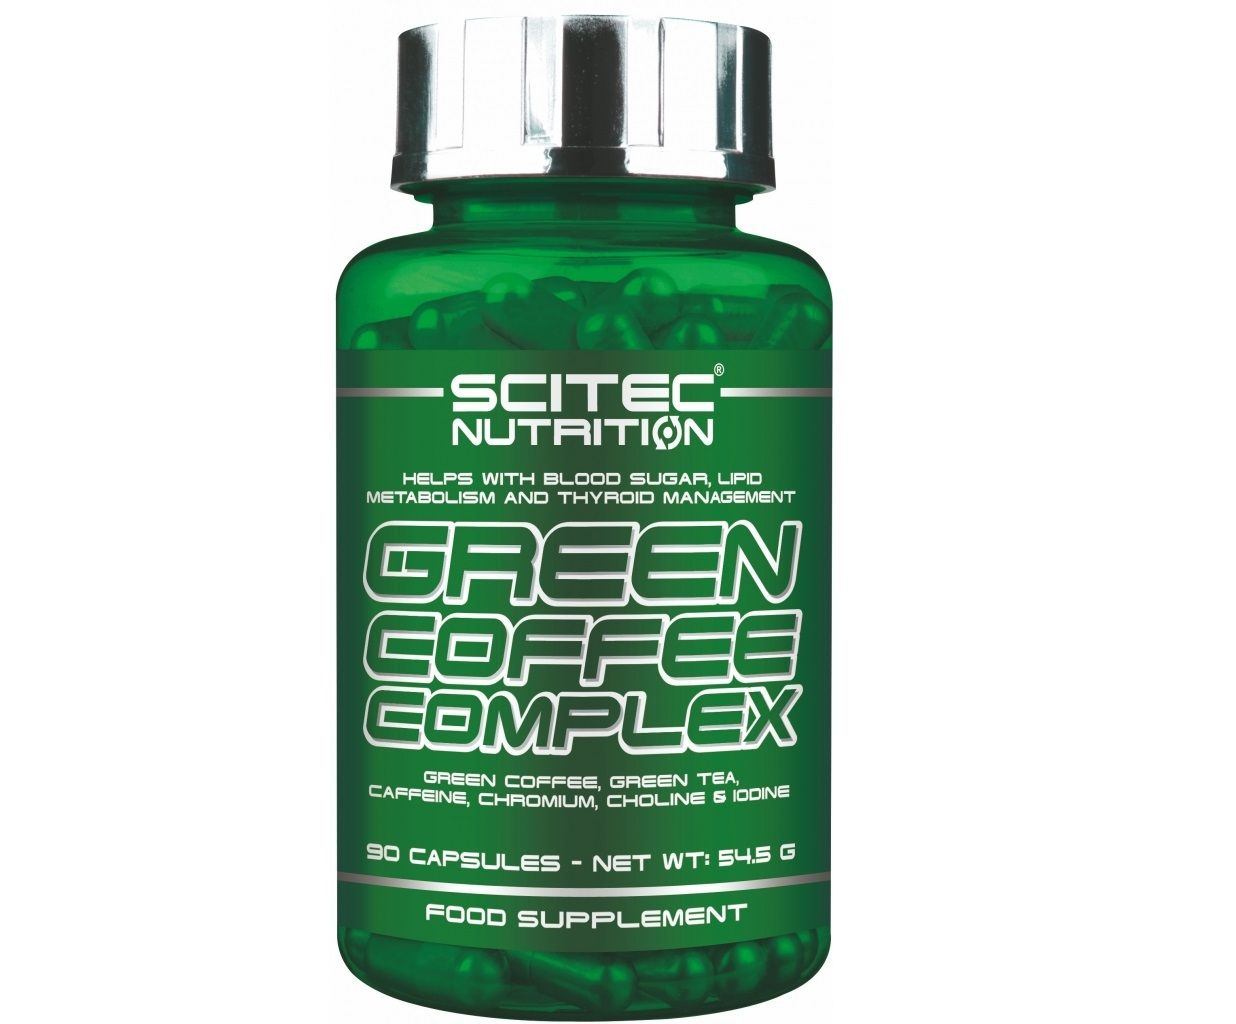 Green Coffee Complex 90 tab - Scitec Nutrition unflavored